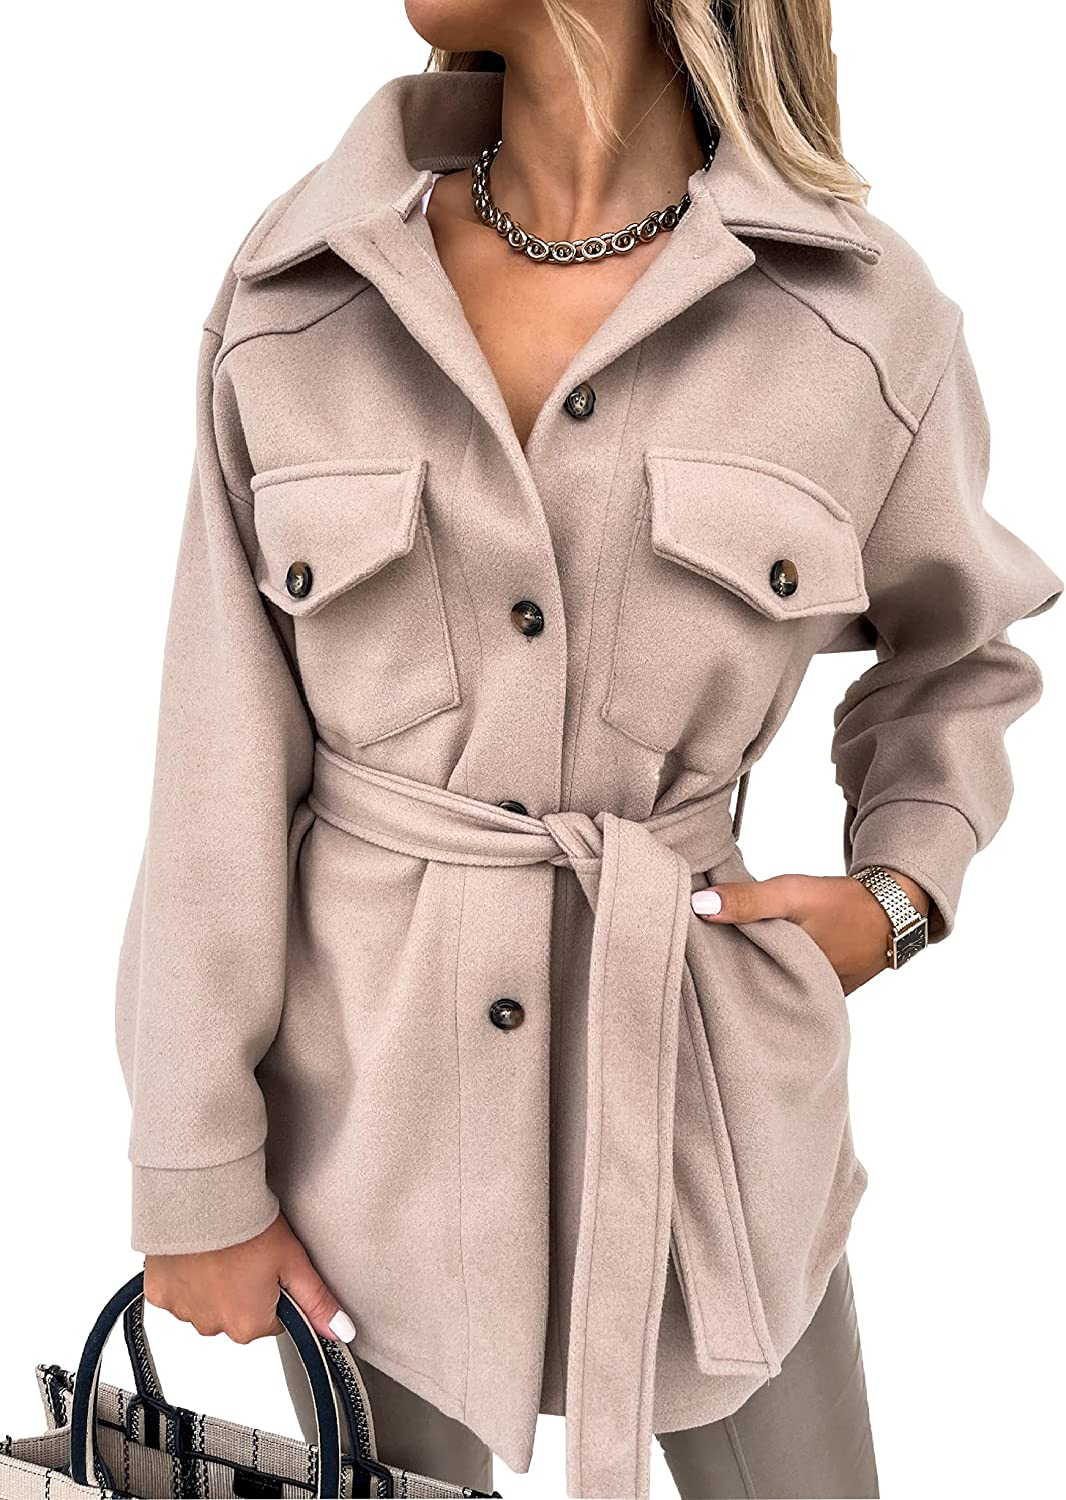 Women Casual Single Breasted Trench Coat Solid Color Lapel Belts Tie-up Long Sleeve Outerwear with Pockets